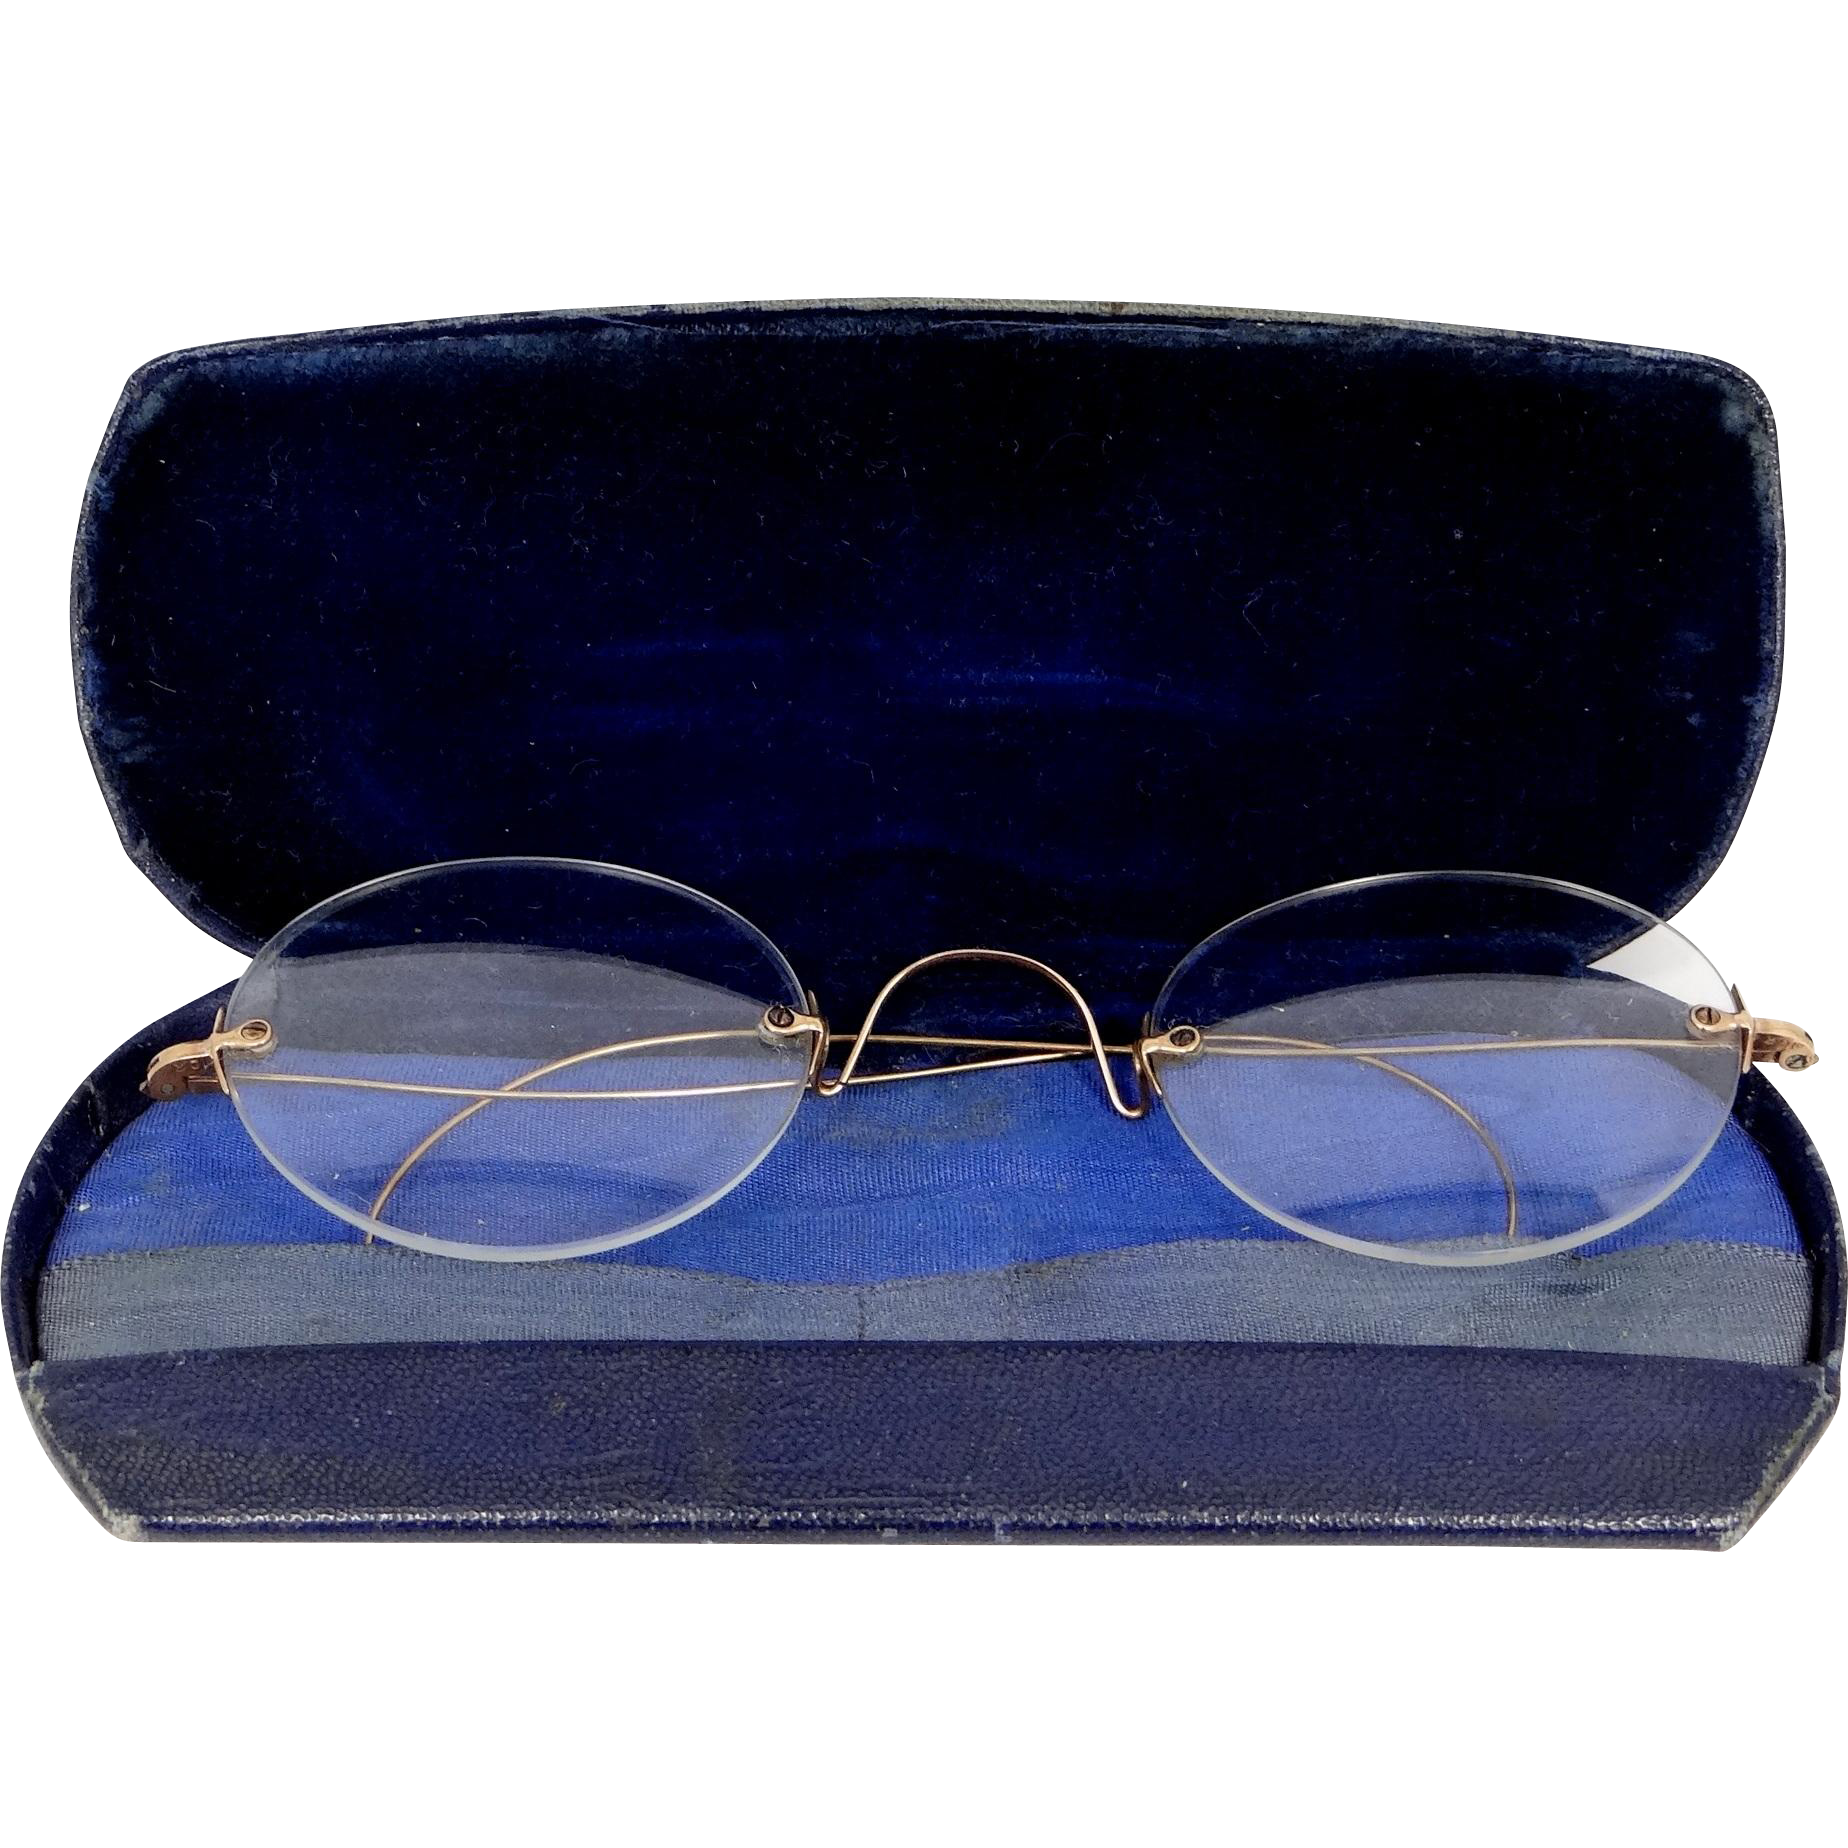 10k Gold Antique Eyeglasses with Original Case from mur ...